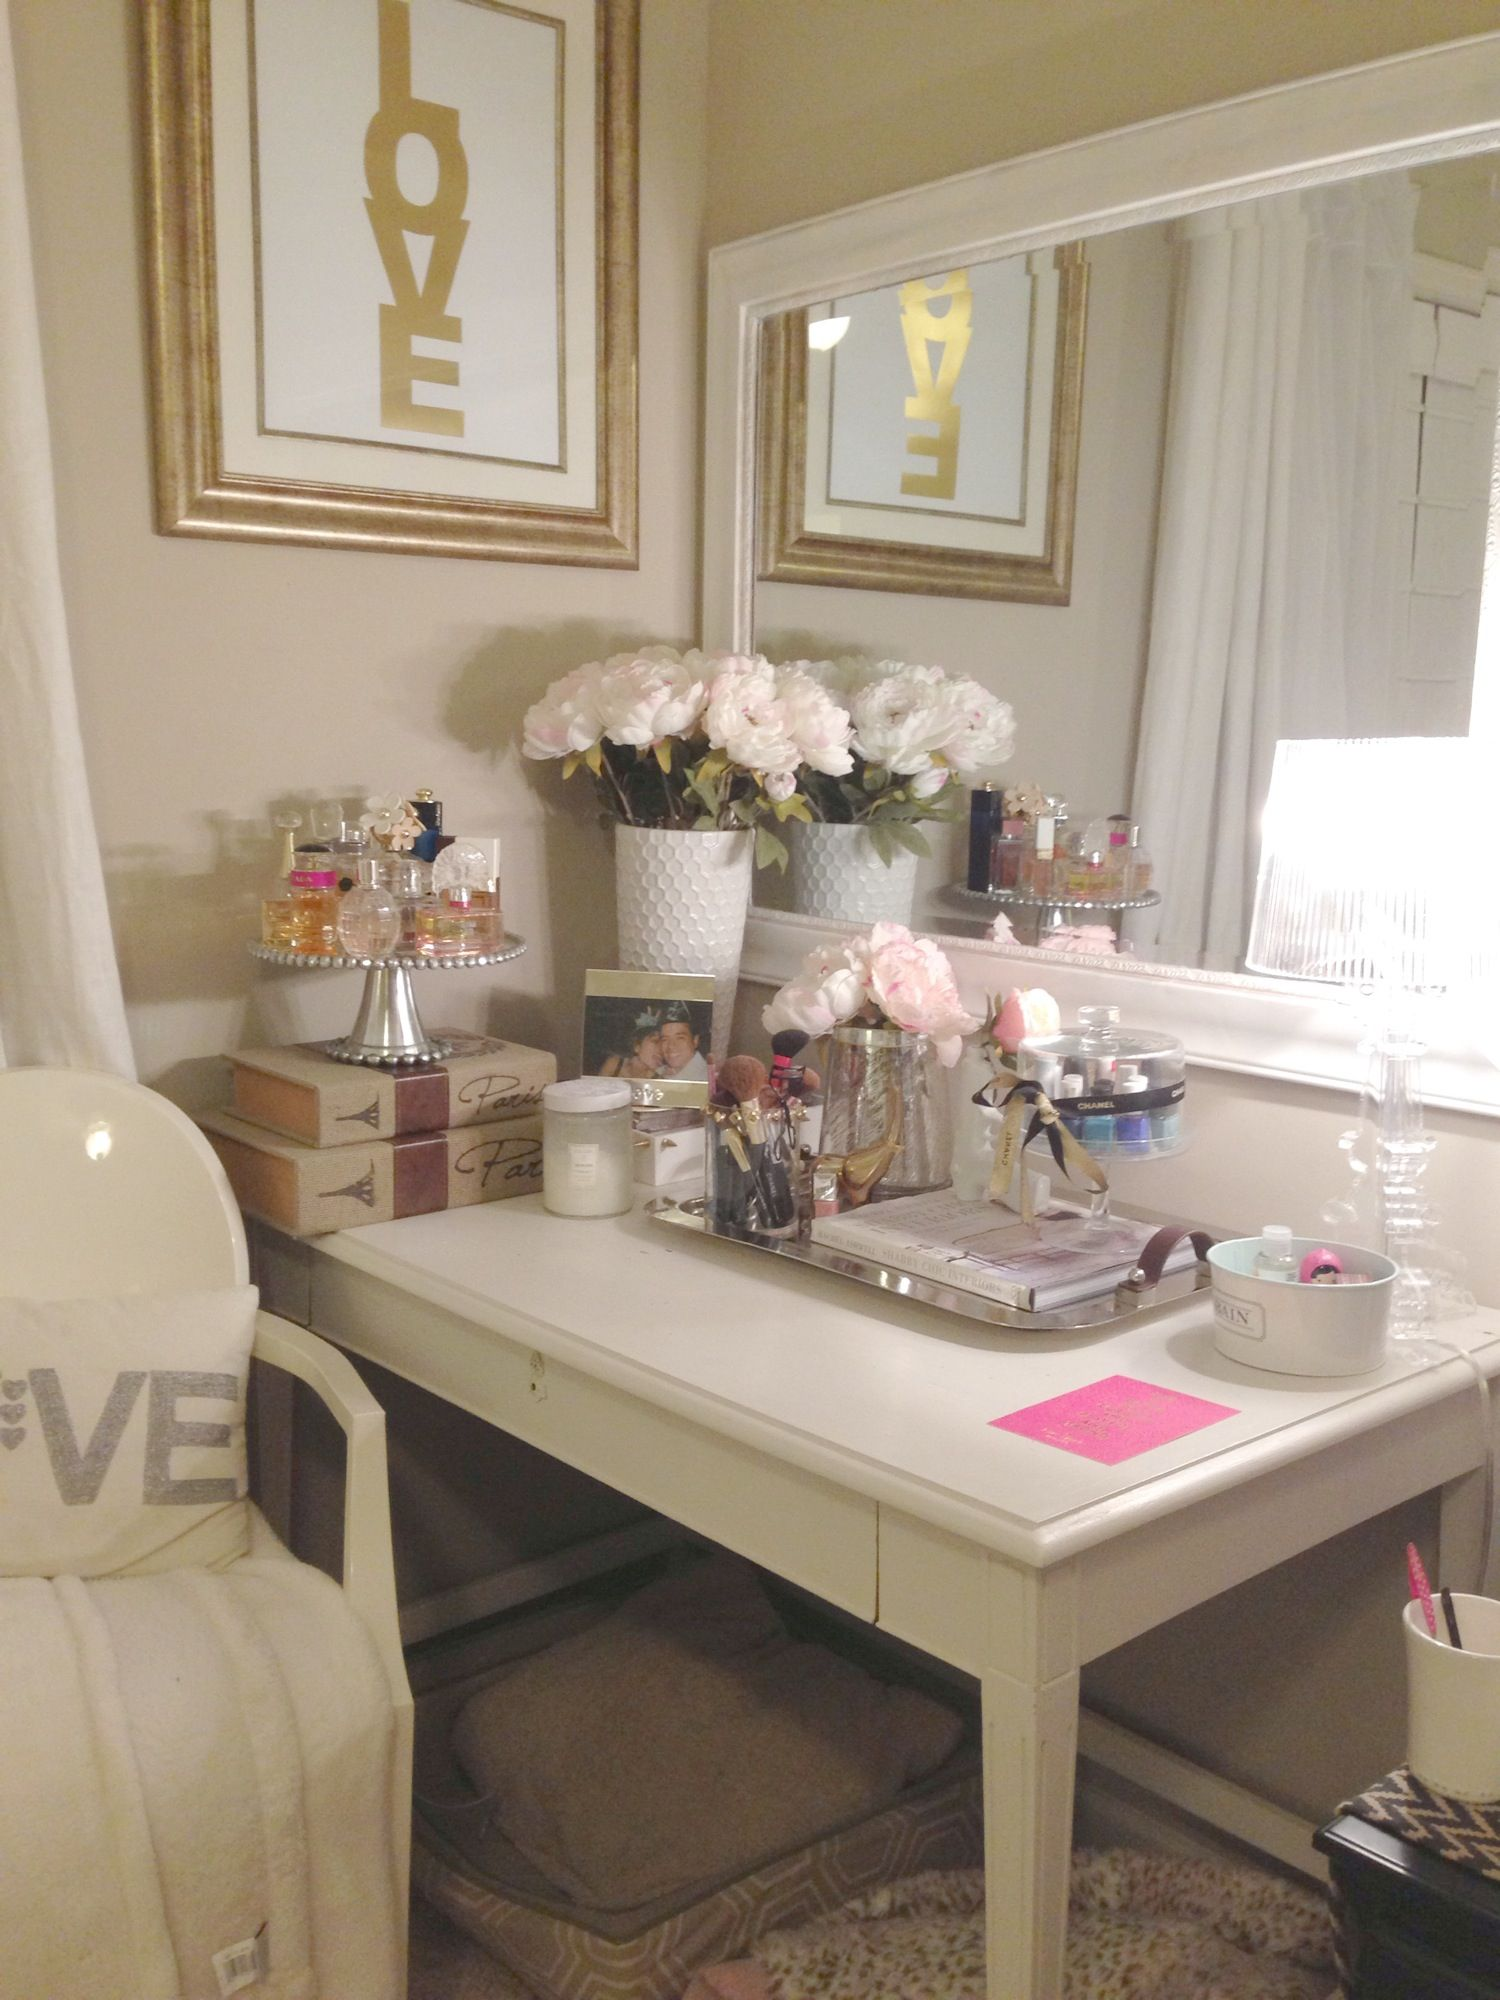 Vanity table home is where the heart is pinterest - Decoracion shabby chic dormitorios ...